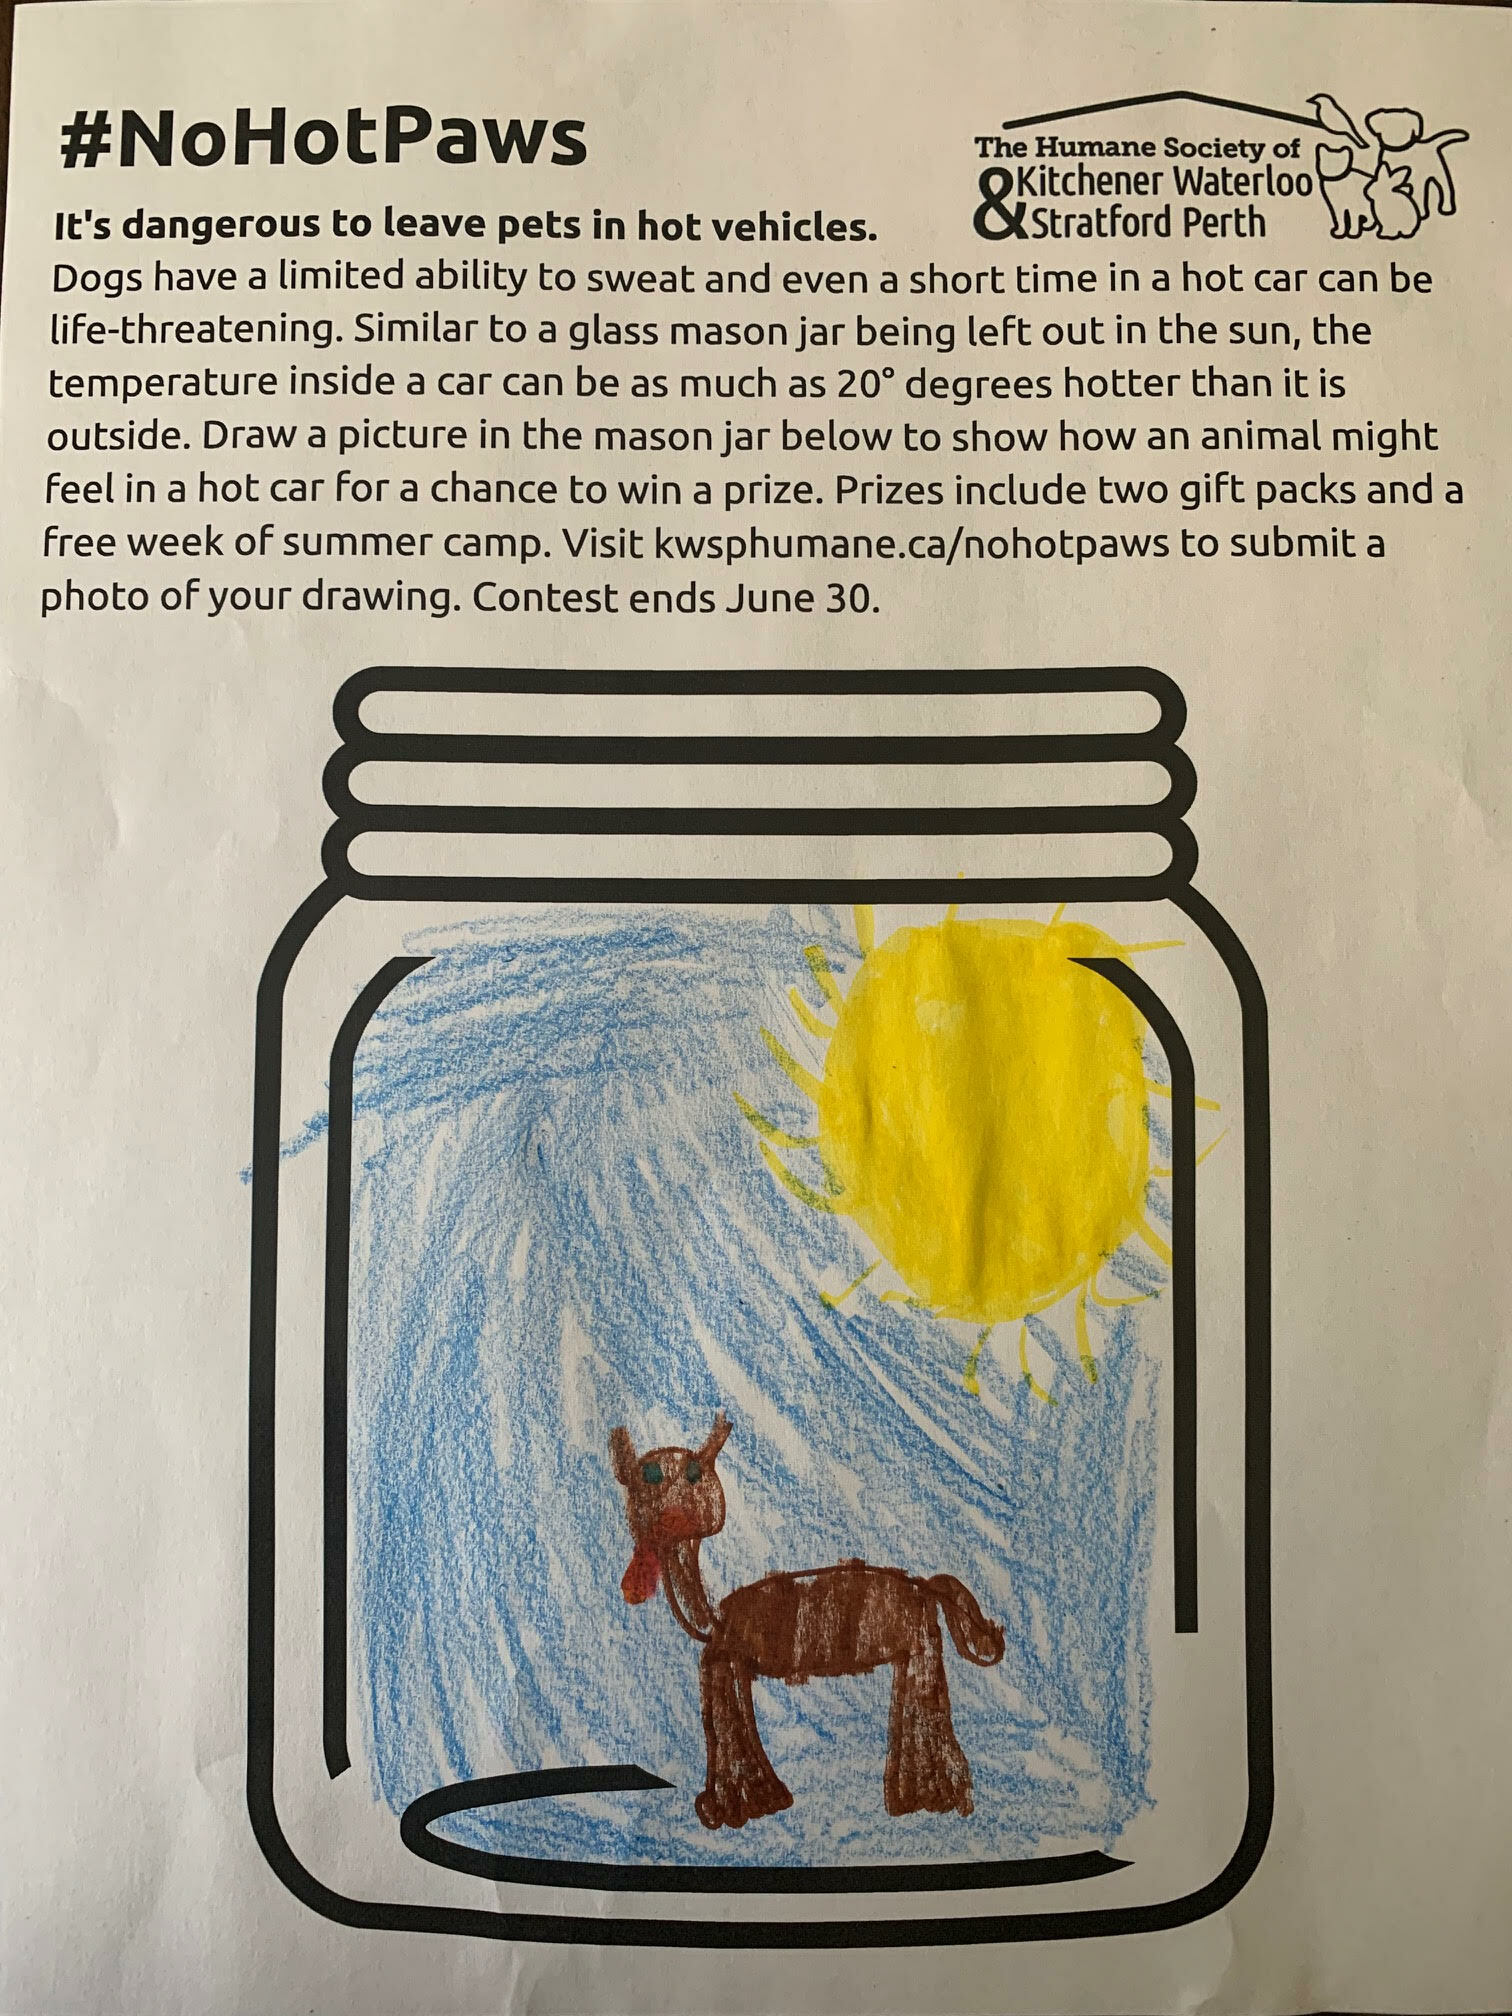 My picture is of a dog sticking out its tongue because it's hot and dogs need to go inside because they can't sweat very much to lose their heat so all their heat will stay inside their body and they might get sick - by Maya Campbell (age 8)